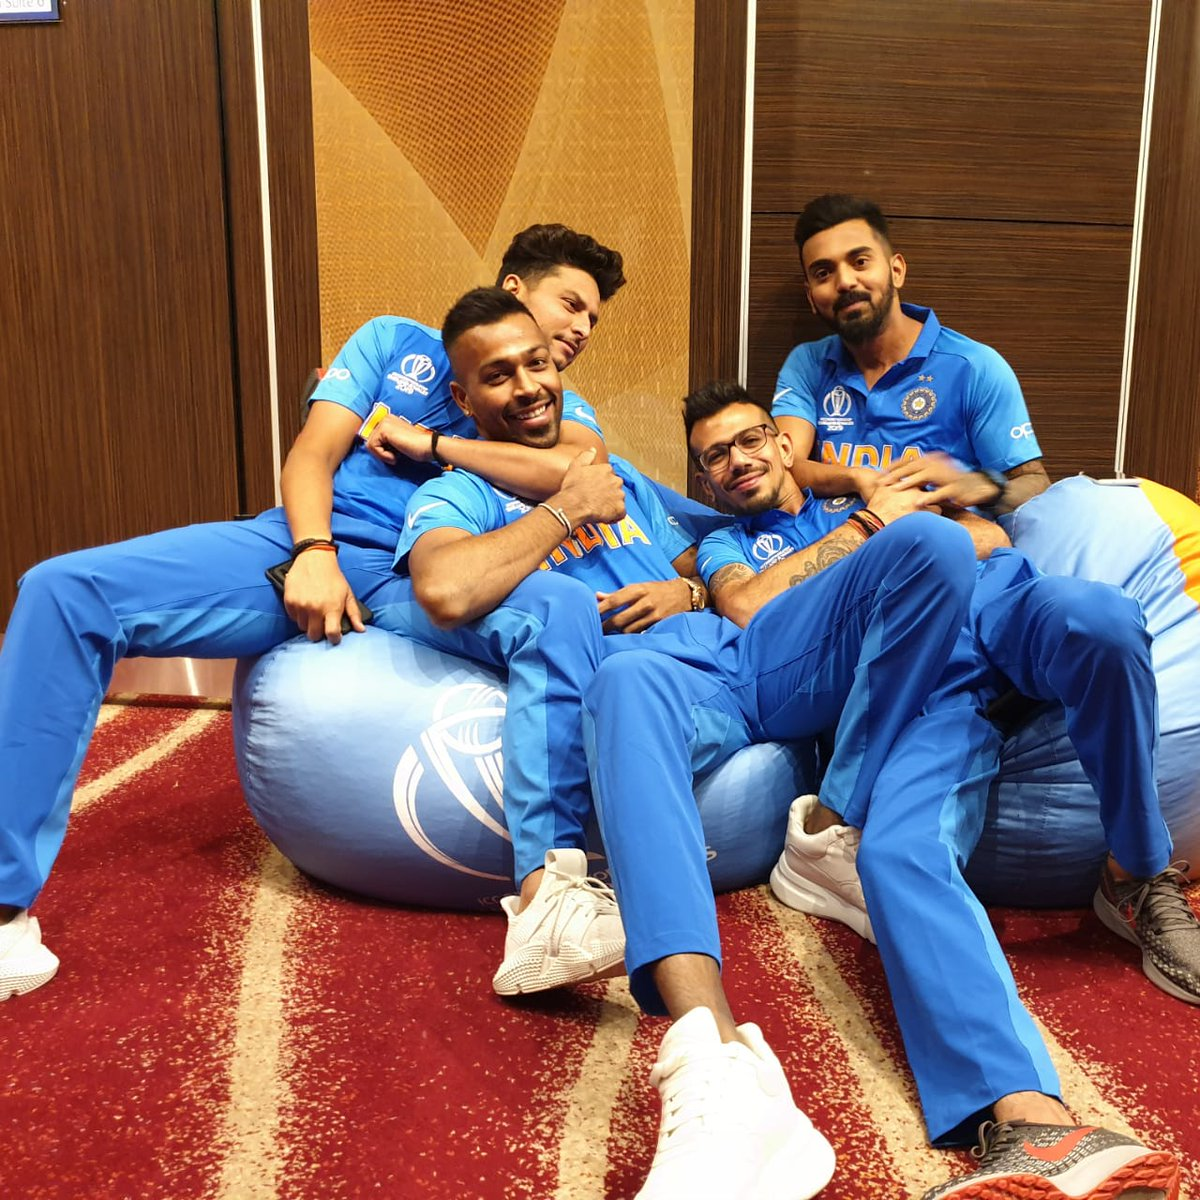 Goofing around with these jokers 😂🤙🏻@imkuldeep18 @hardikpandya7 @yuzi_chahal